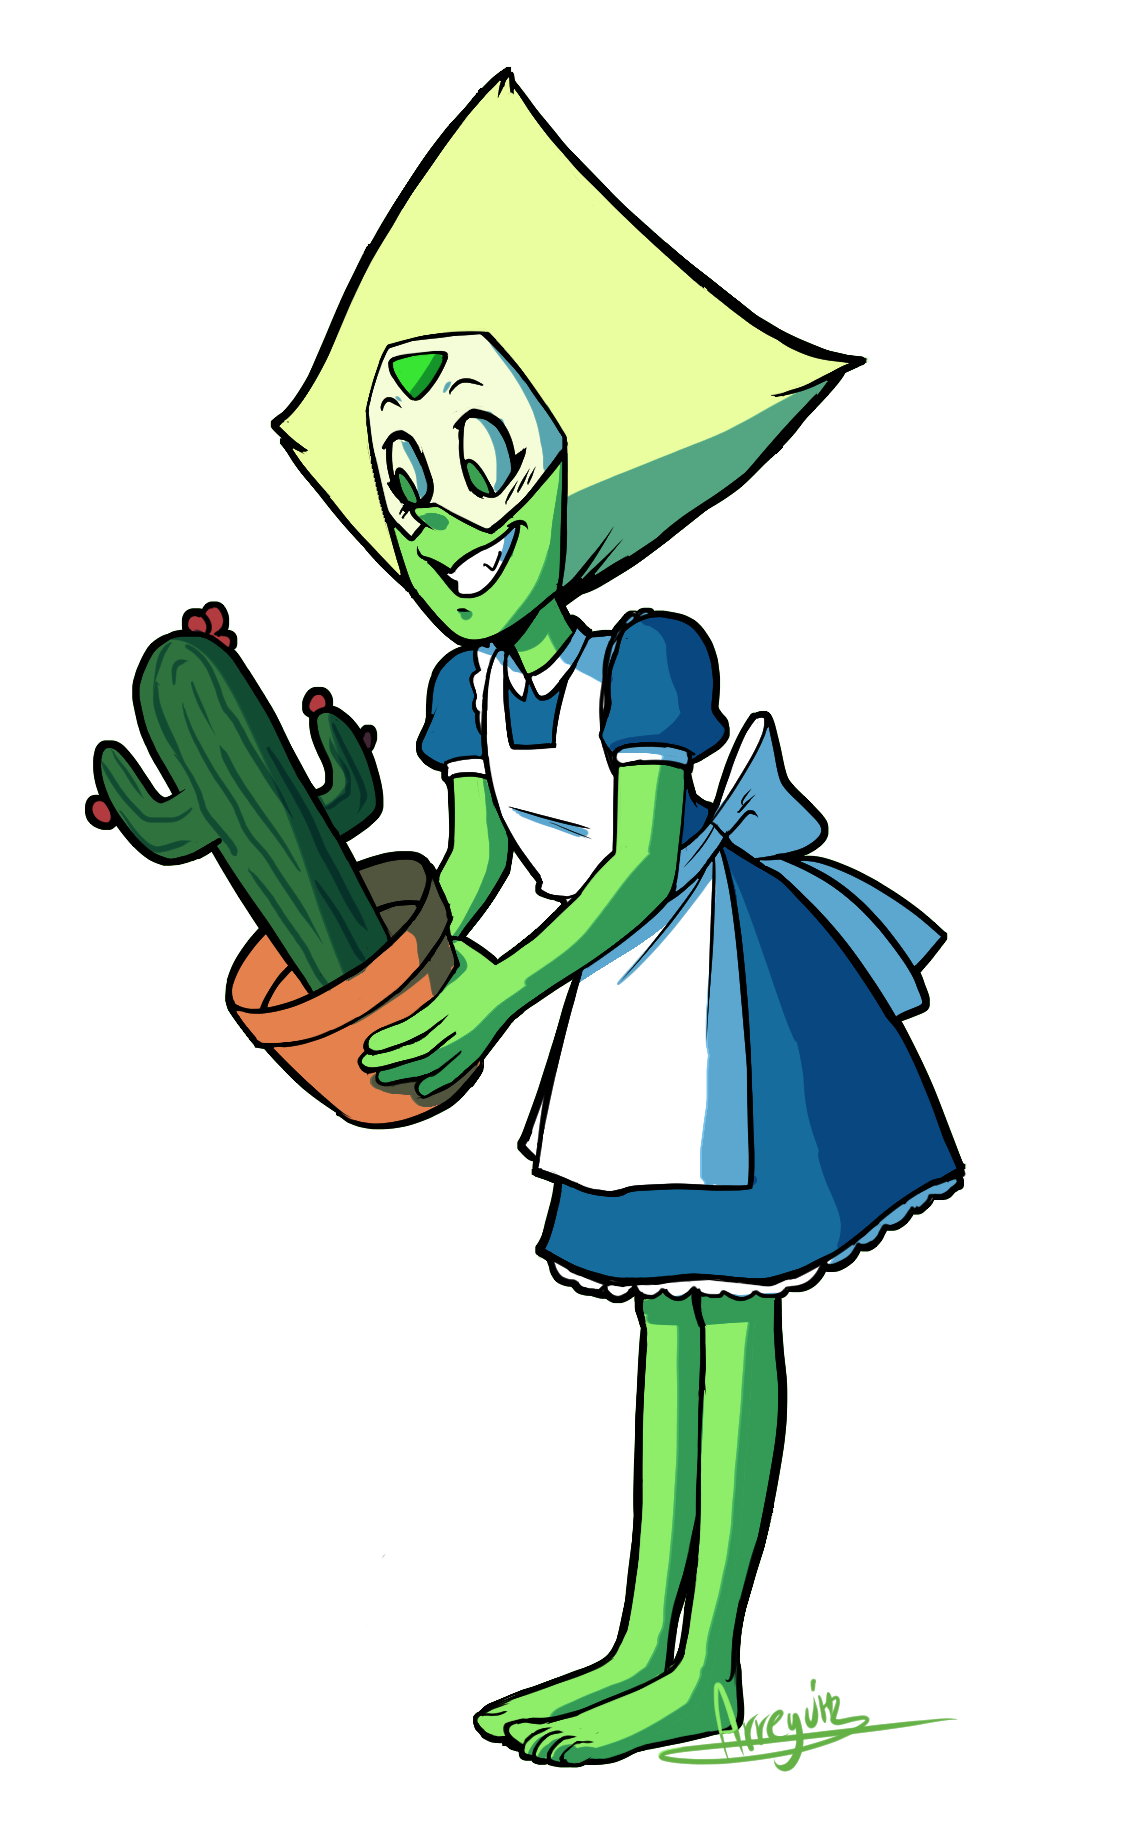 Drew a cactus holding another cactus.